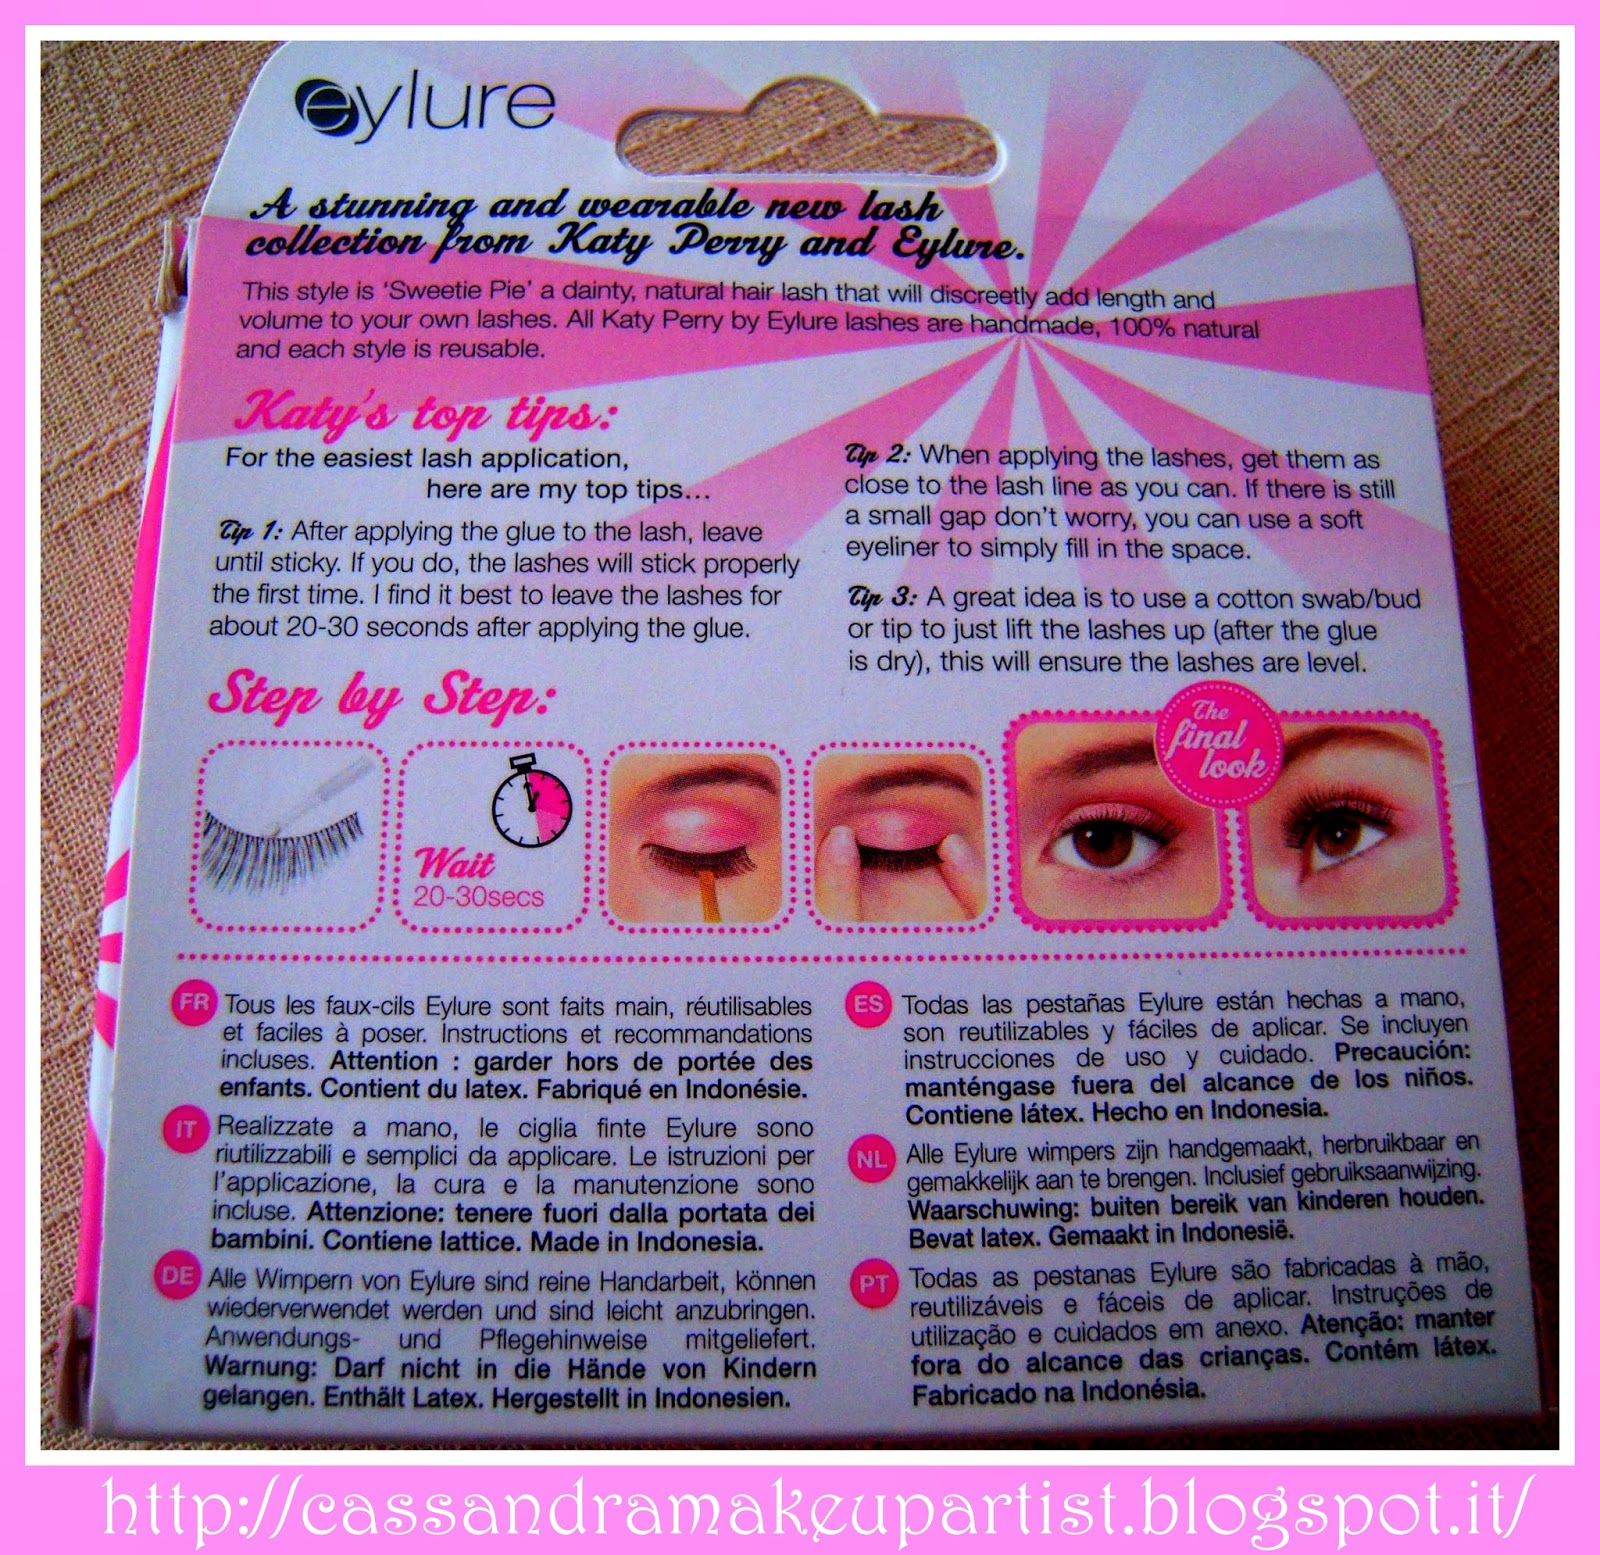 EYLURE - Katy Perry Lashes - SWEETIE PIE -false lashes - ciglia finte - colla - prezzo - price - recensione - review - nude - naturali - glue - ciglia a nastro - tutorial